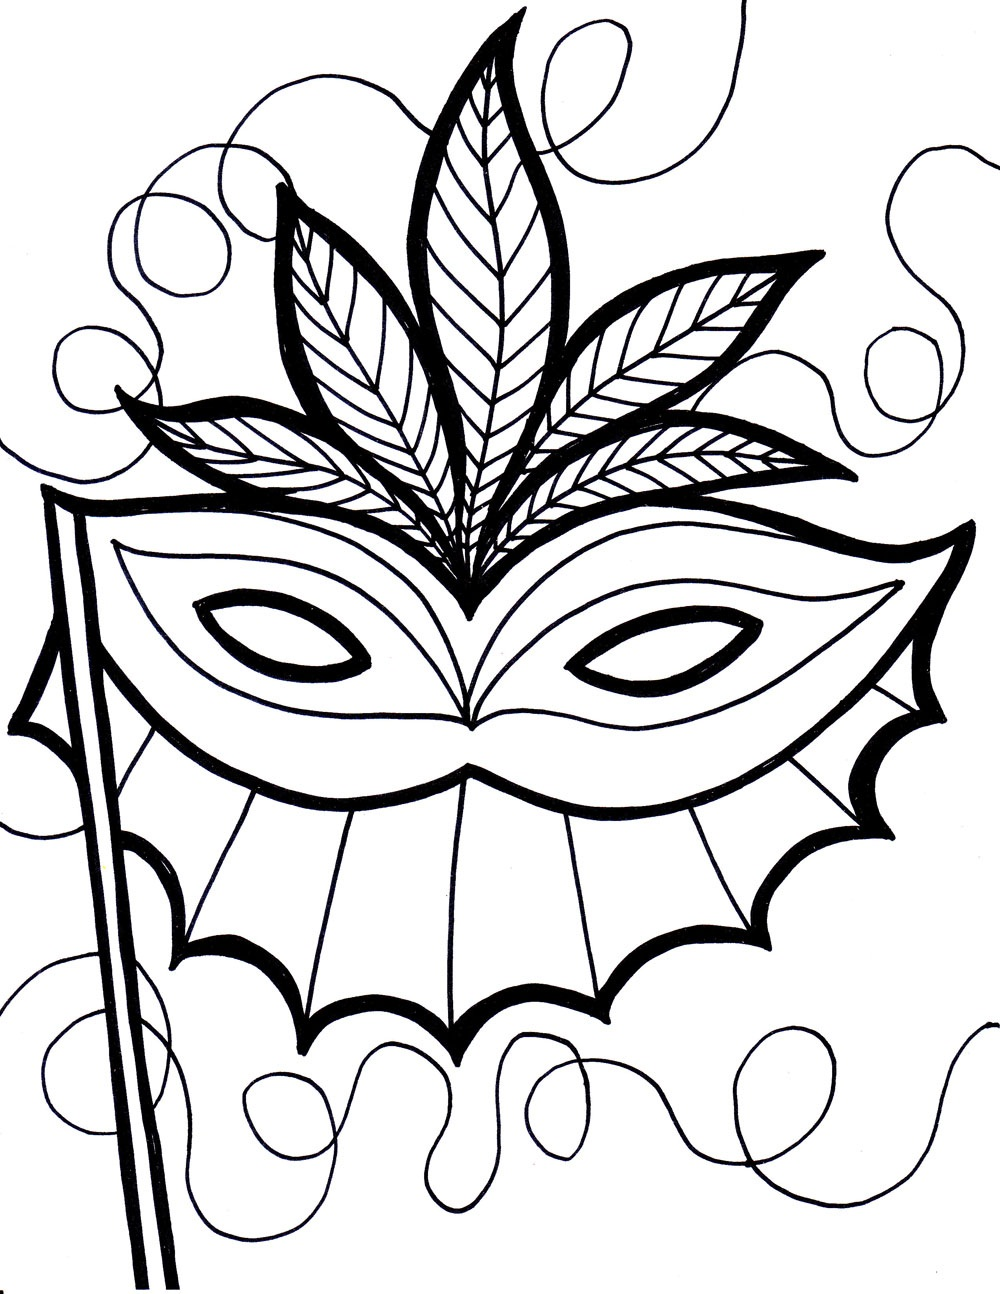 coloring pages mardi gras - photo#9